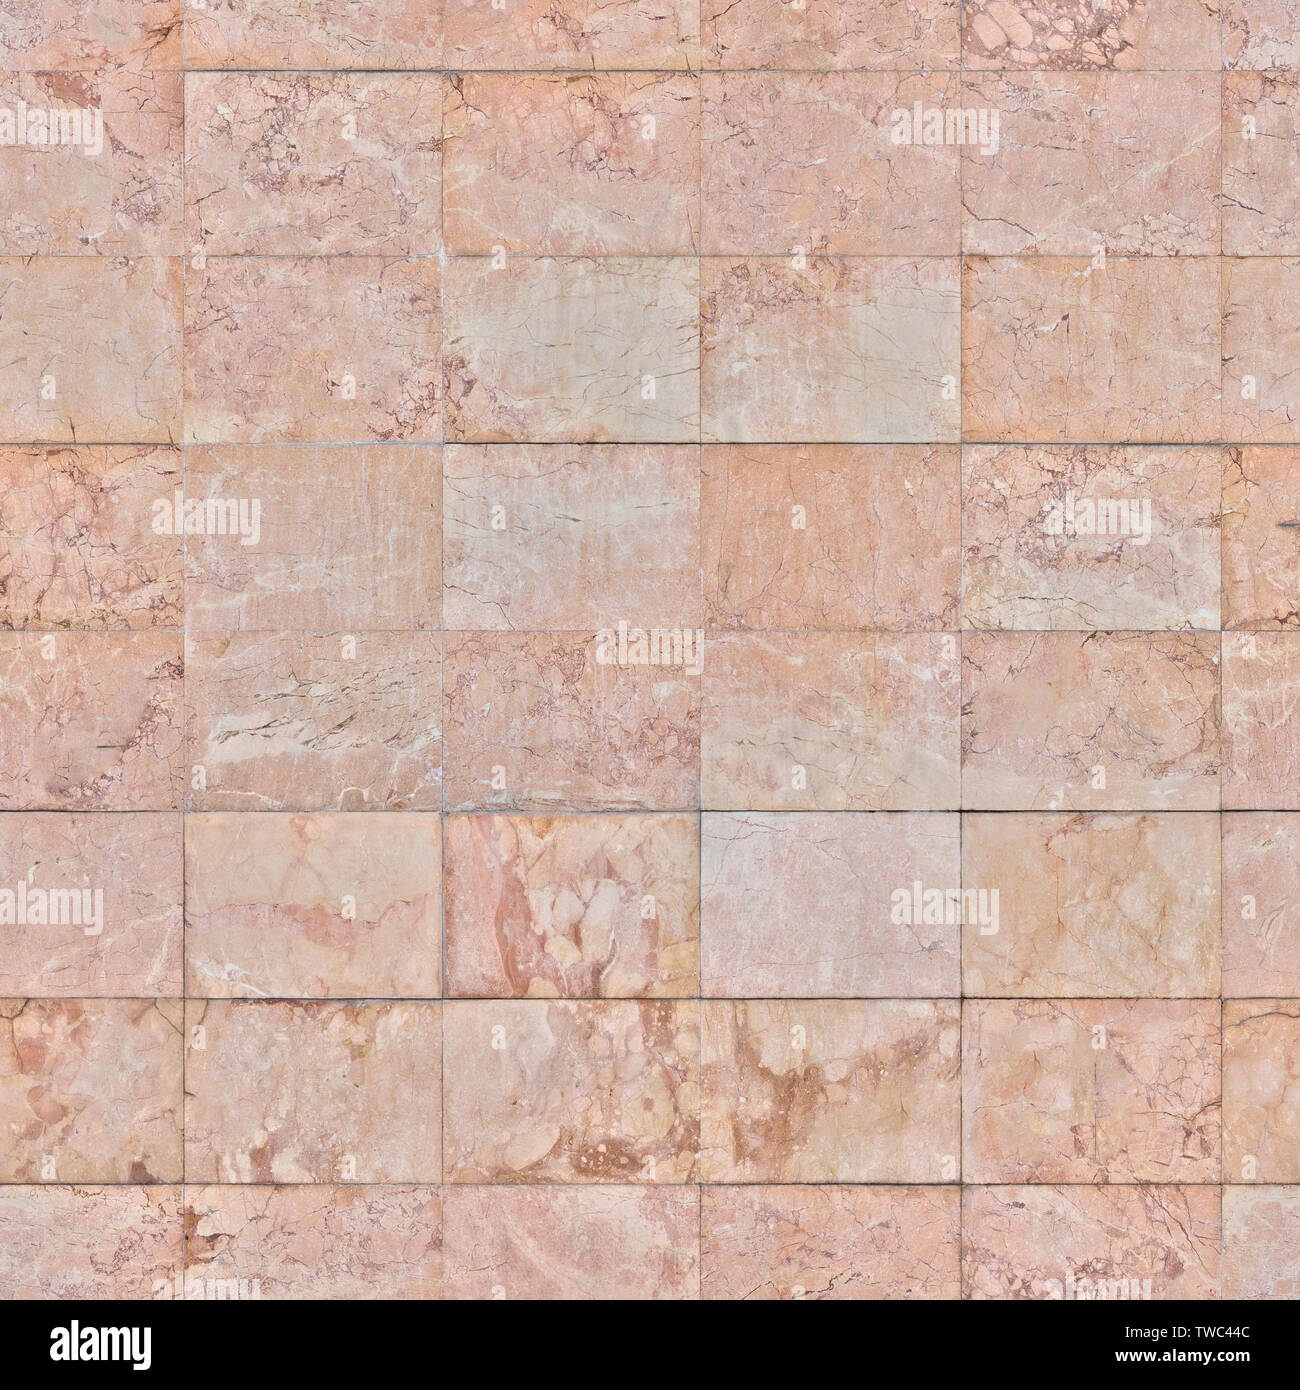 Pink Granite Tiles For The Interior Of The House With Textured Scratches On The Surface Stock Photo Alamy